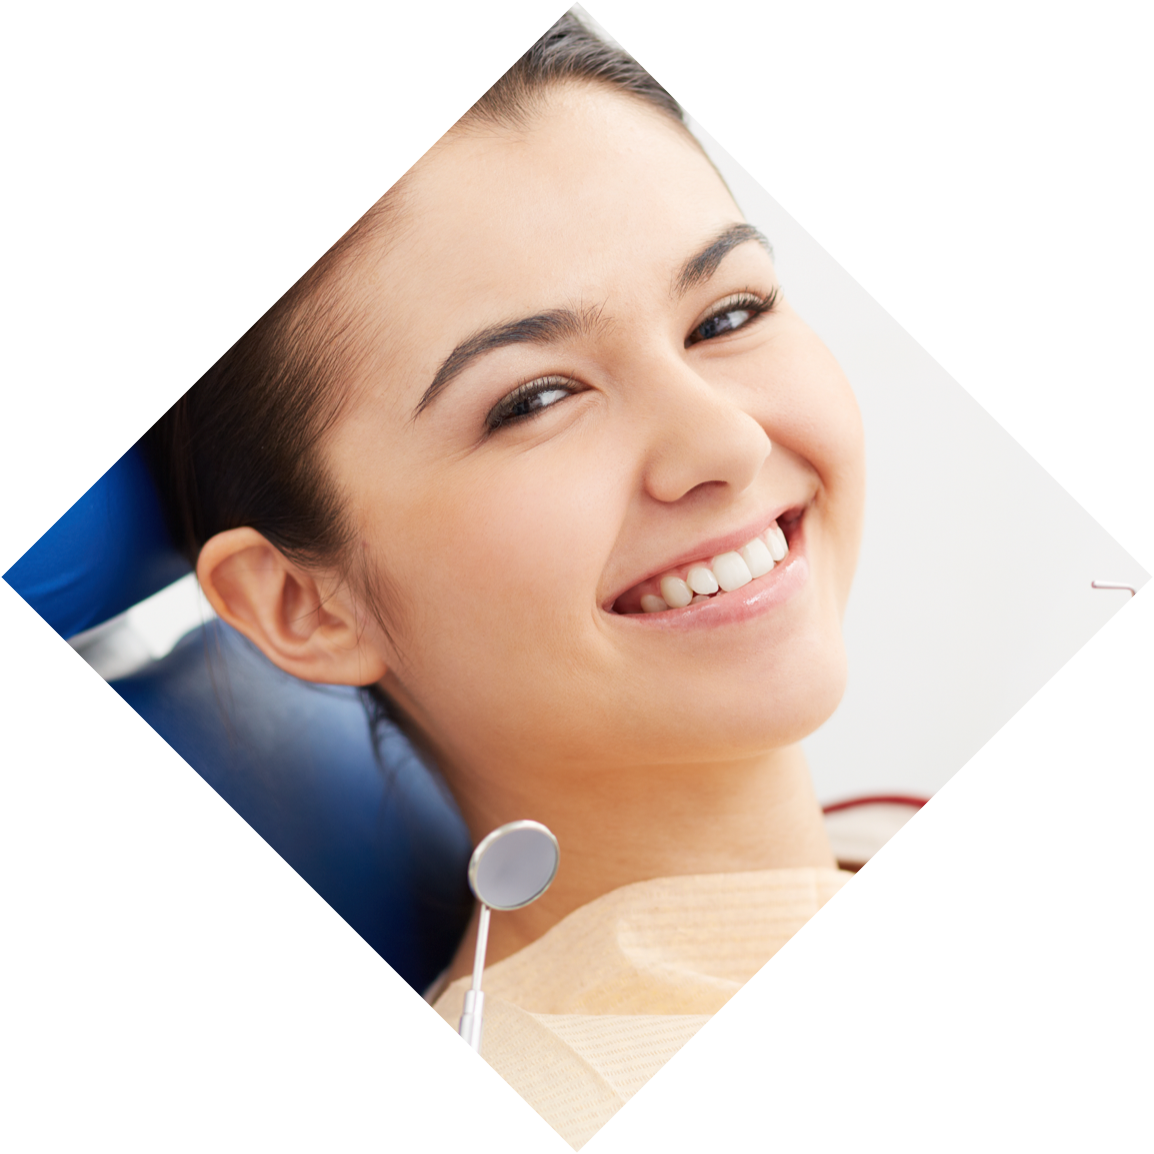 Dentists checking appointment booking software for bookings